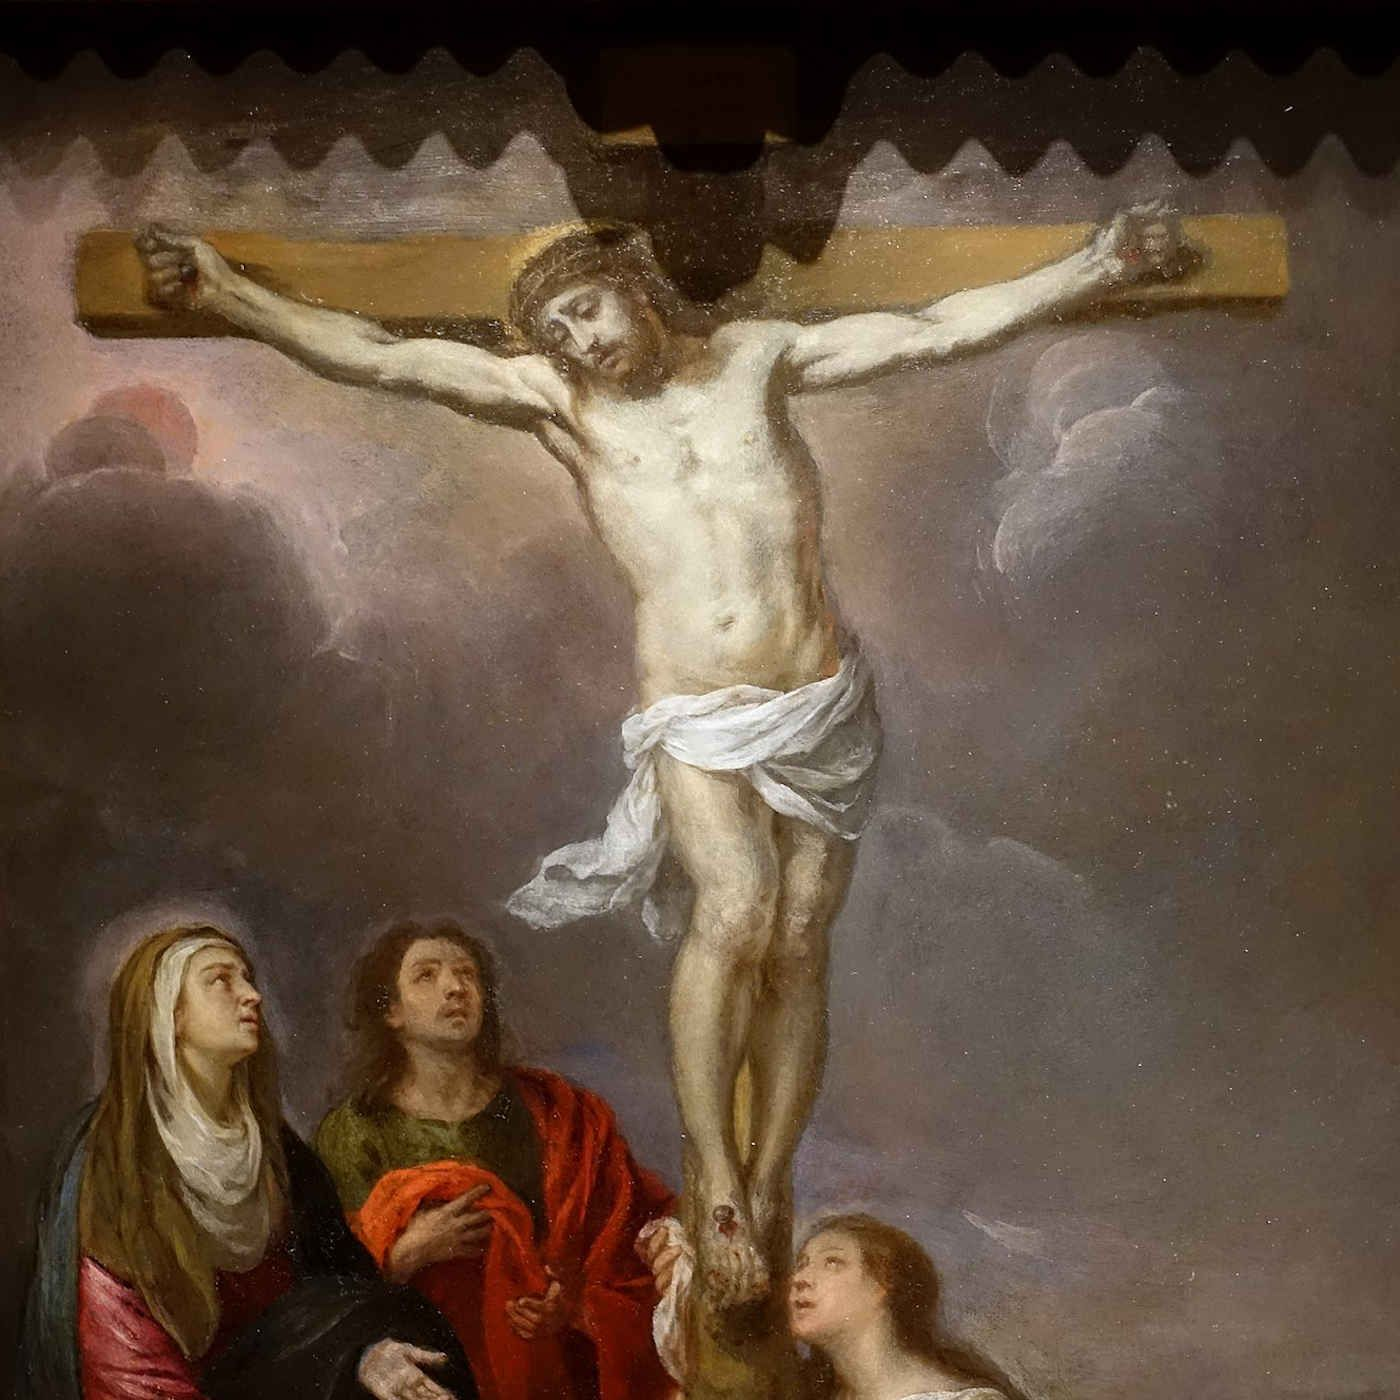 Memorial of Our Lady of Sorrows, September 15 - Mother Mary's Sorrowful Heart